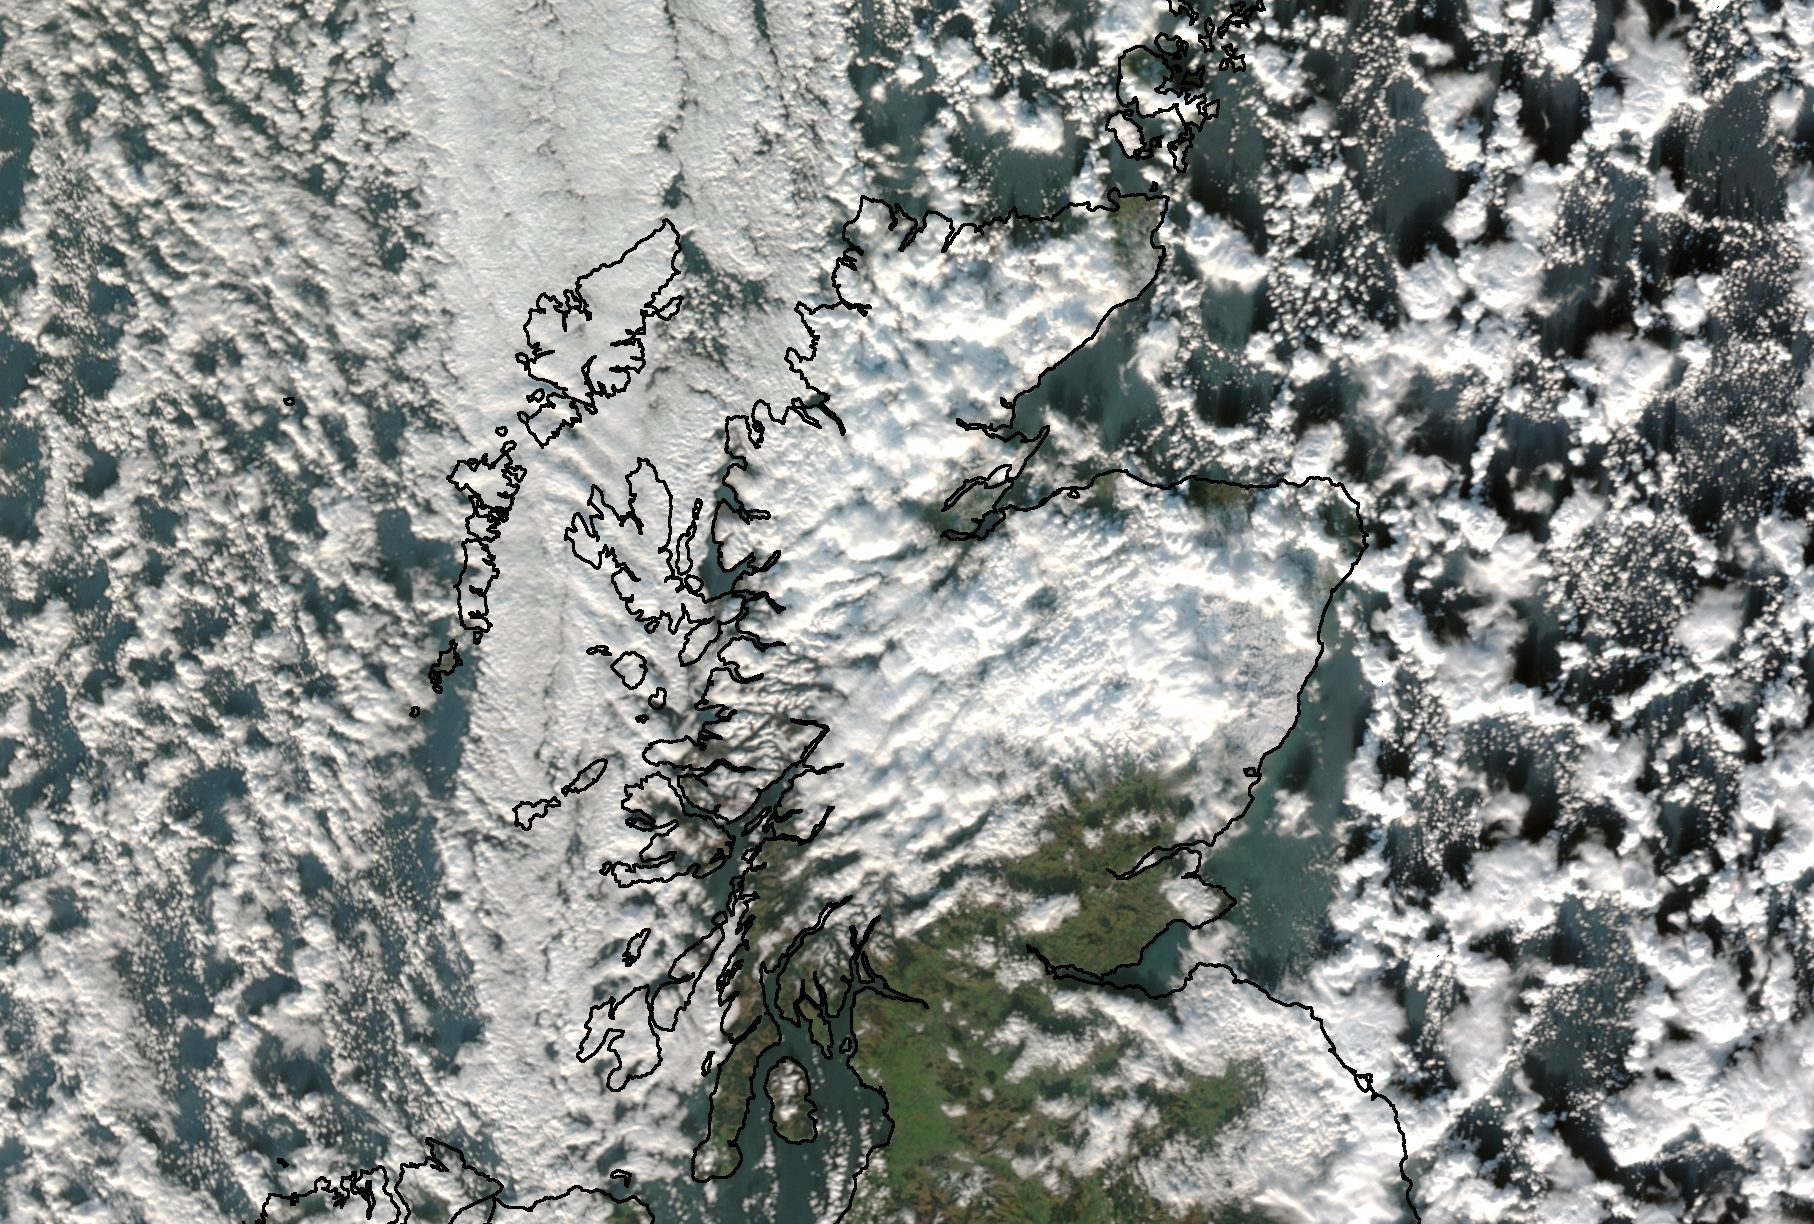 A satellite image showing snowy and cloudy scenes across Scotland.